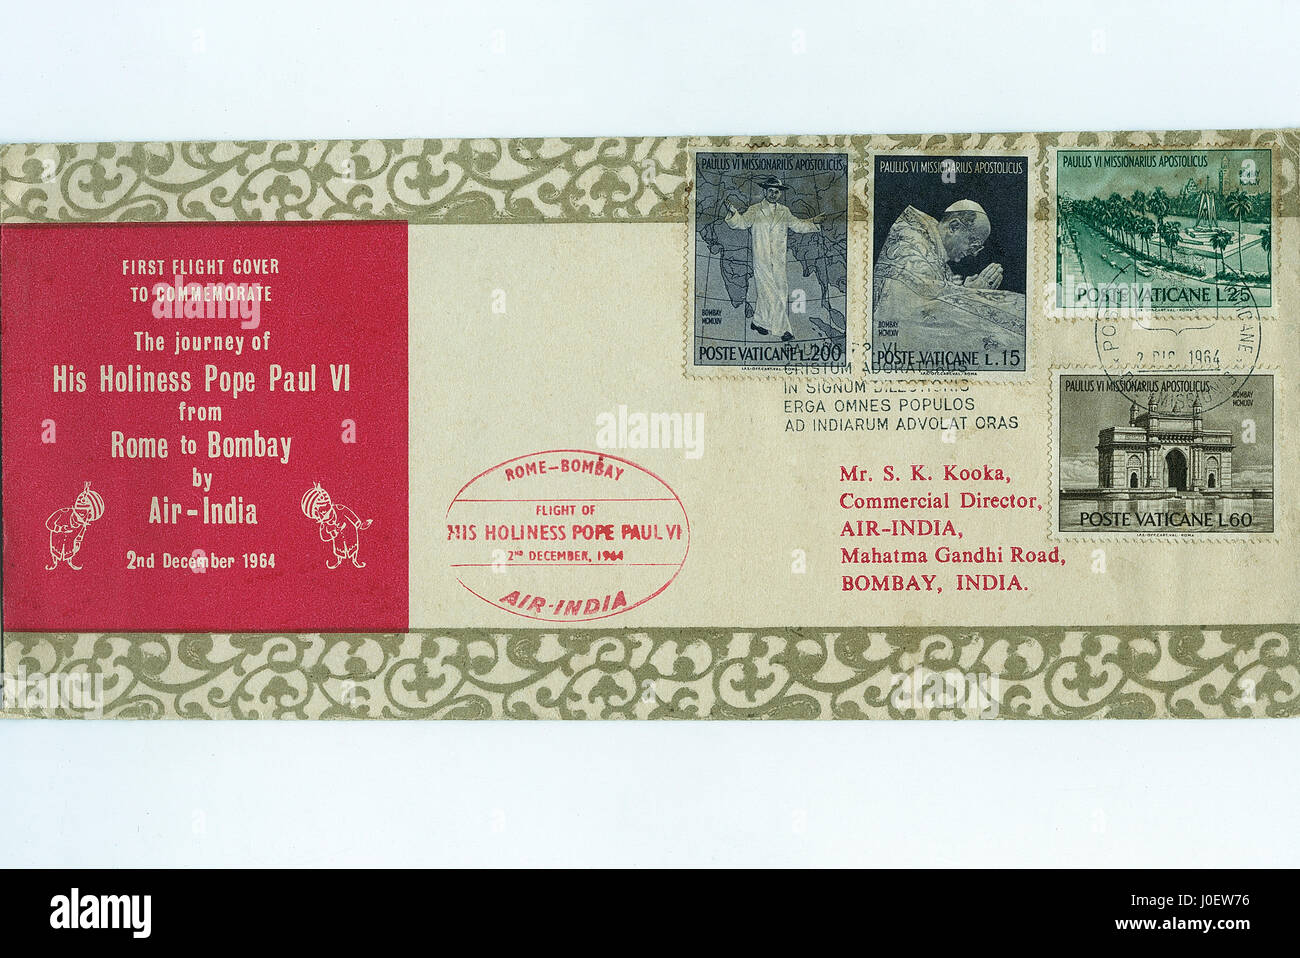 First flight cover to commemorate, postage stamps, india, asia - Stock Image